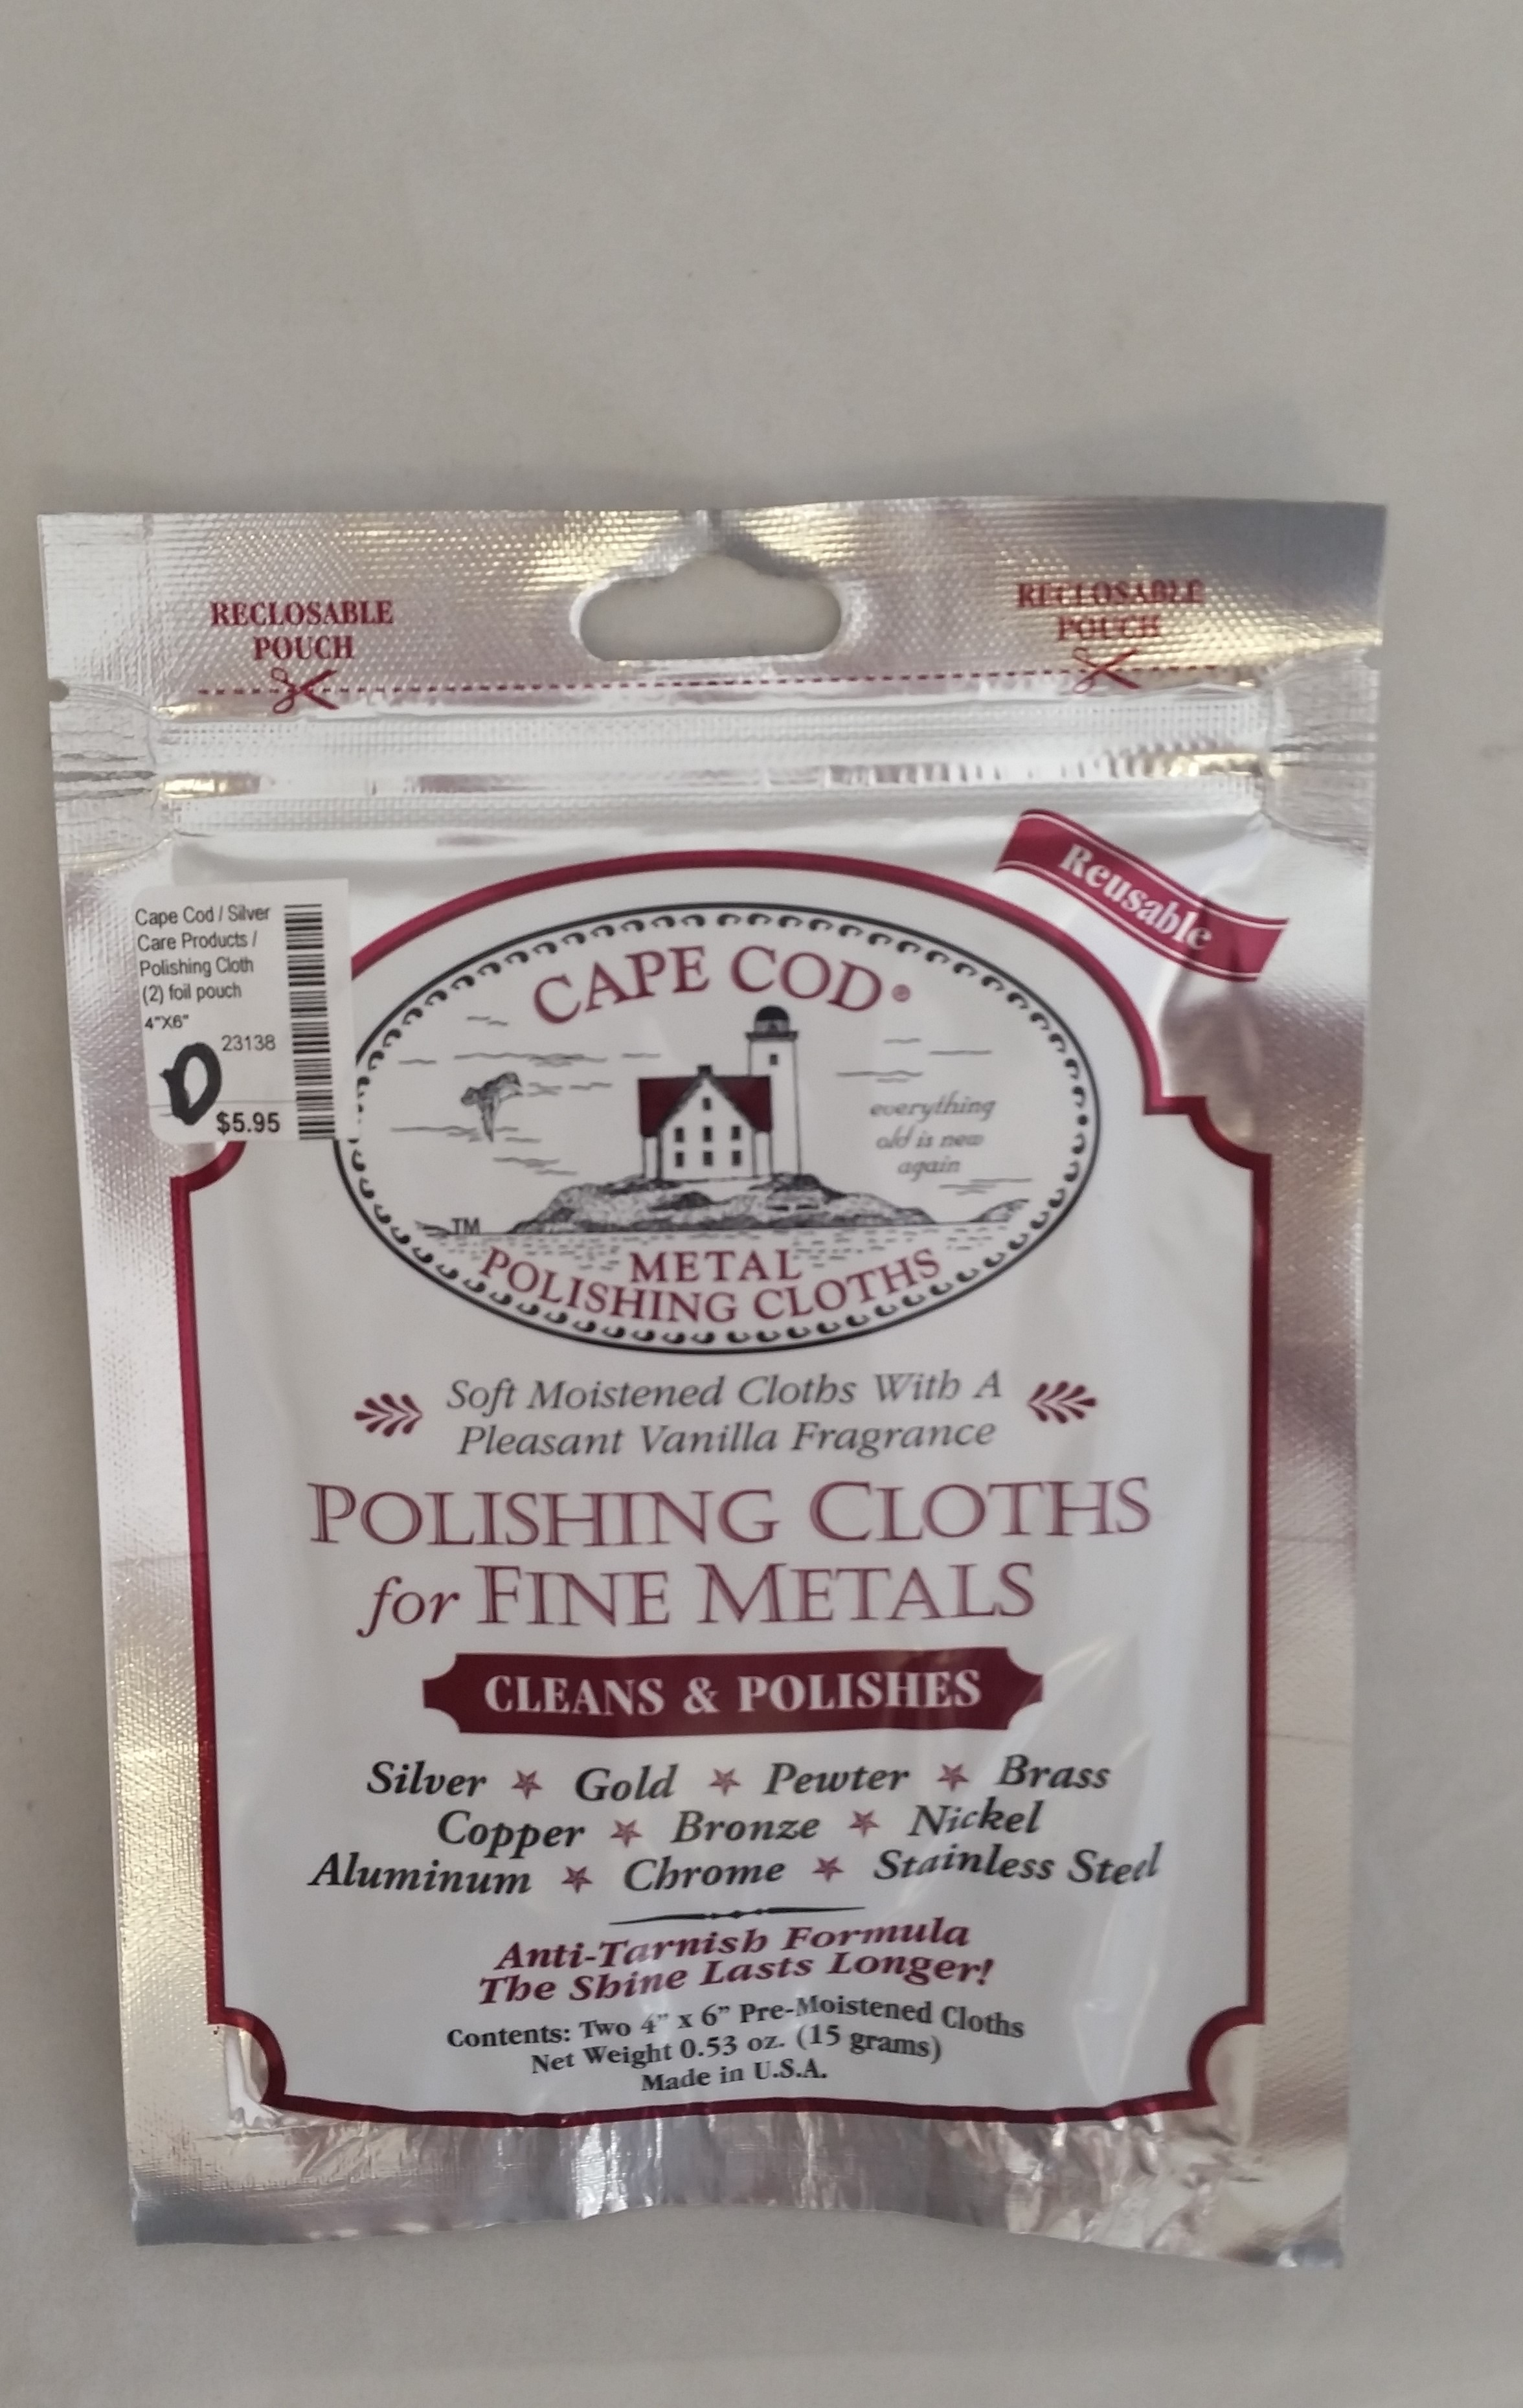 Cape Cod - 'Silver Care Products' - Polishing Cloth (2) foil pouch